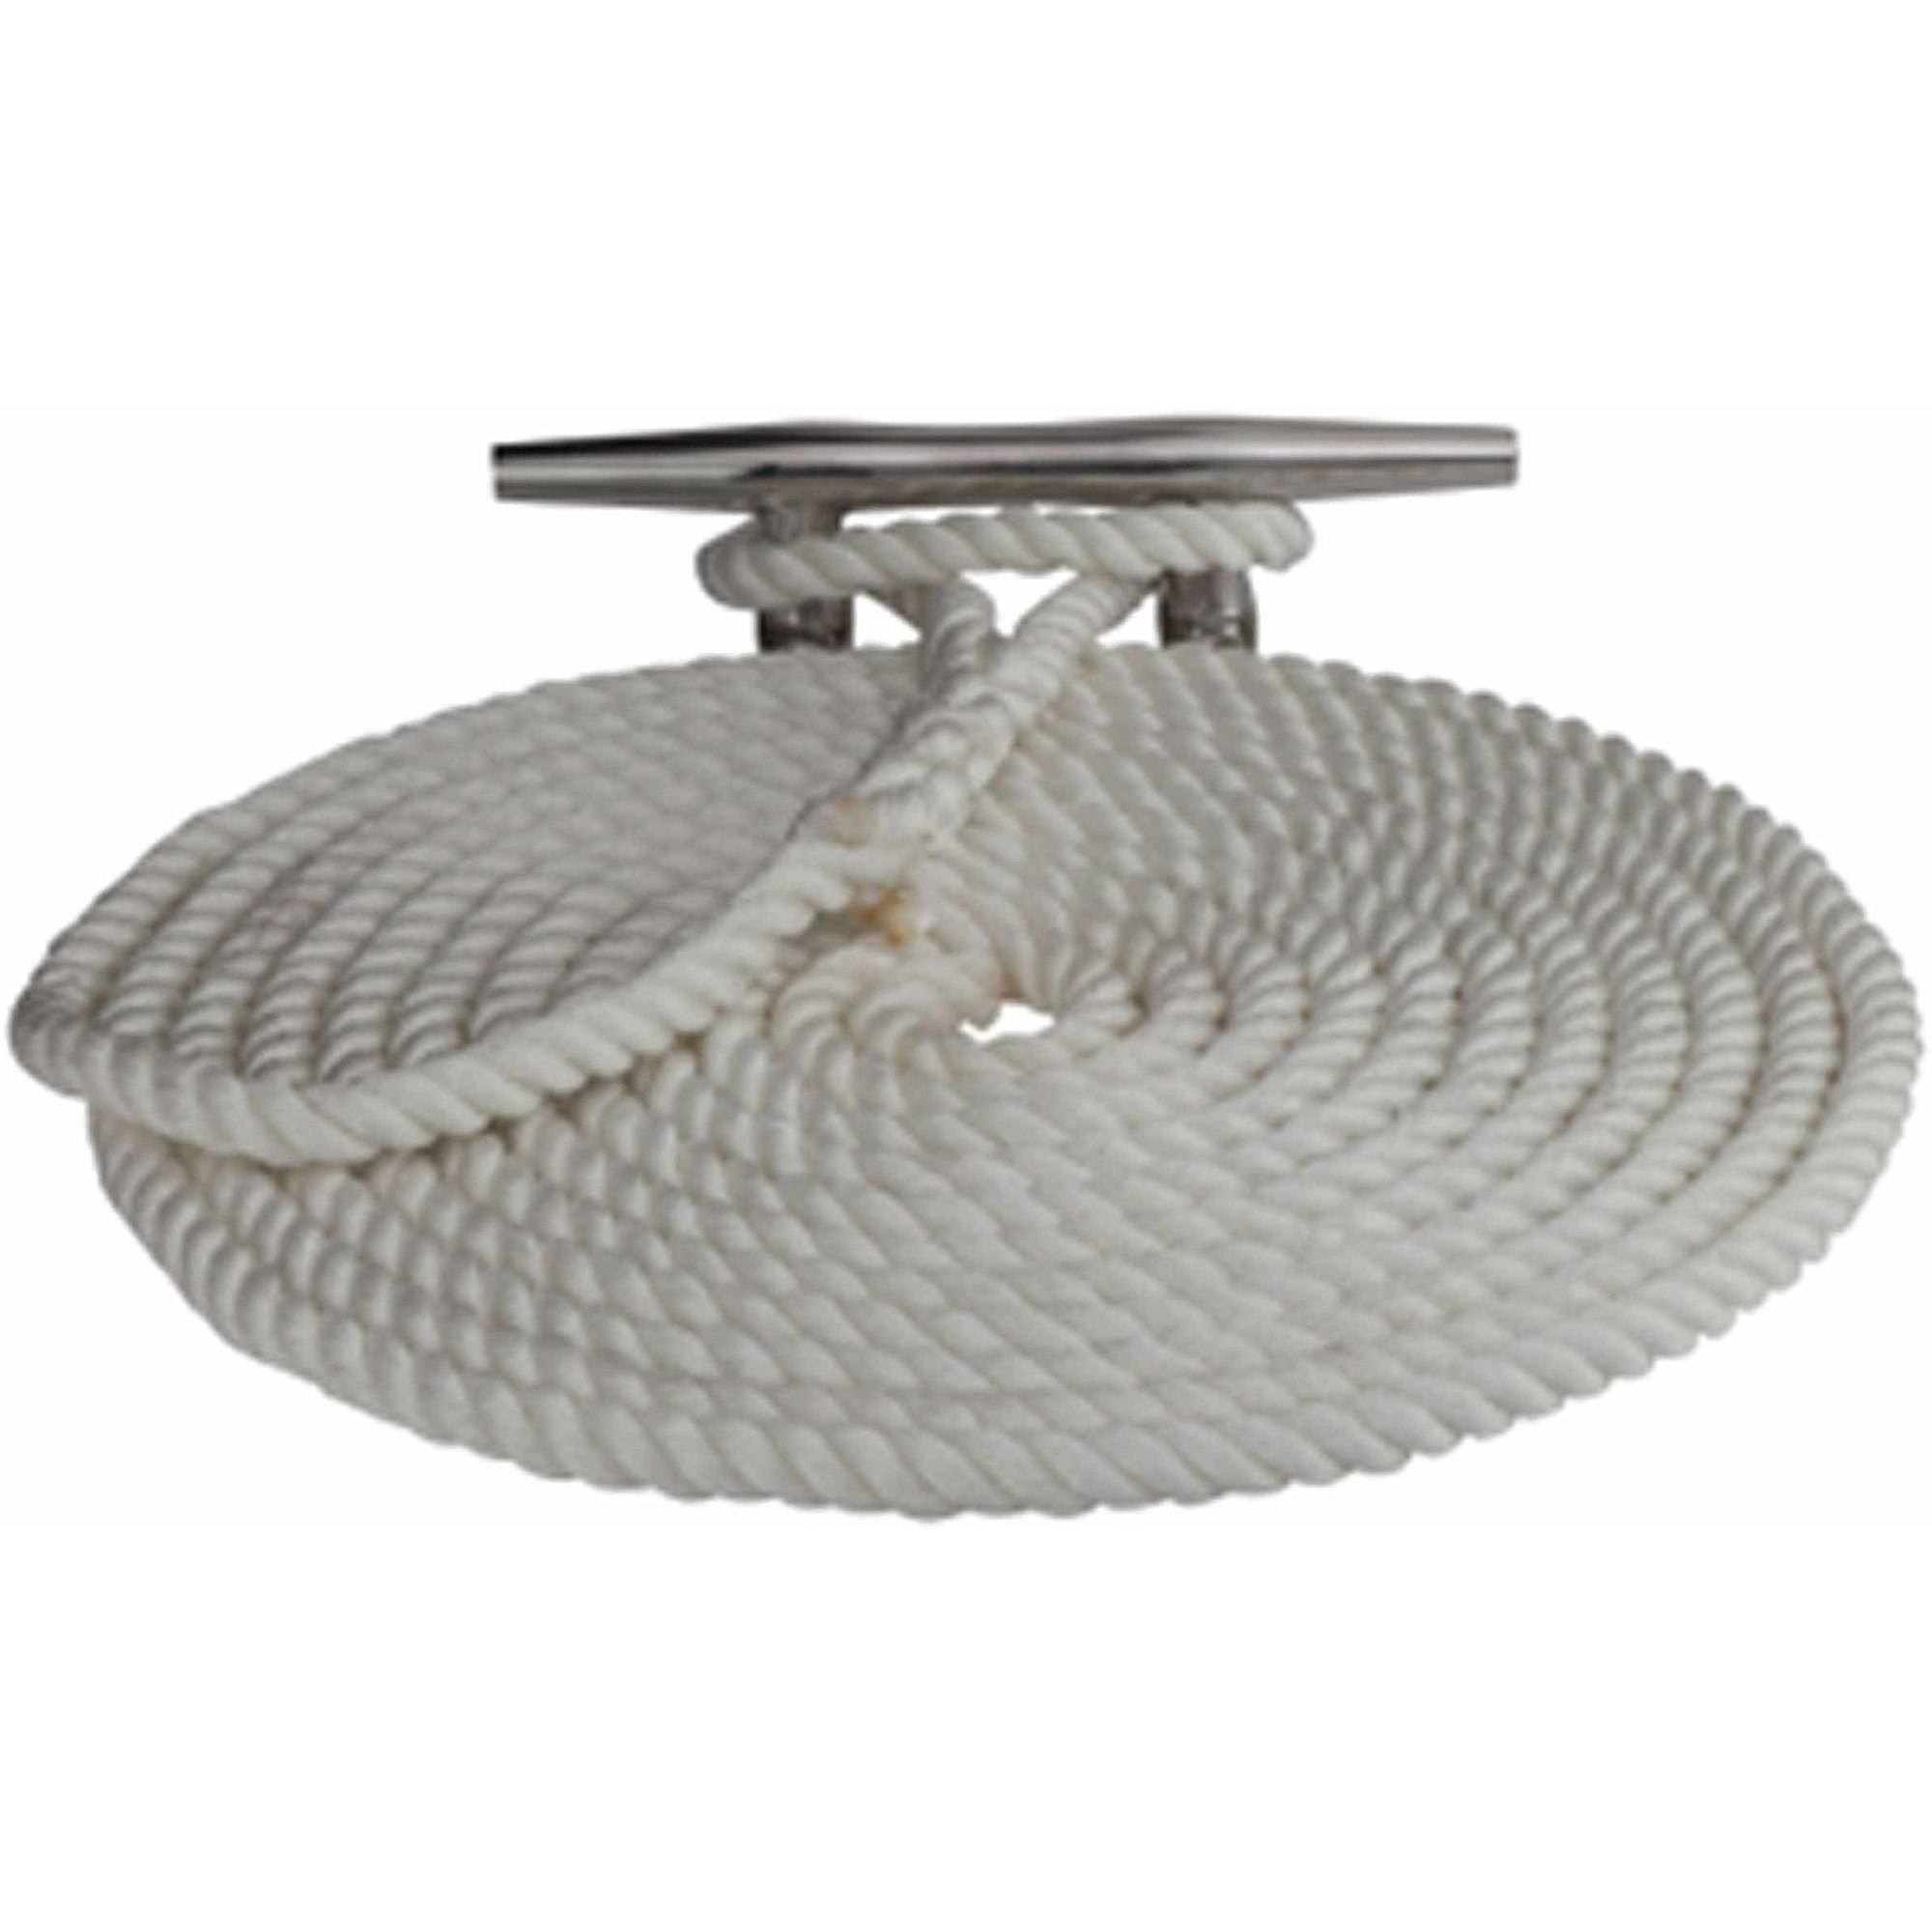 "Click here to buy Sea-Dog 301110050WH-1 Twisted Nylon Dock Line, 3 8"" x 50', White by Sea-Dog."